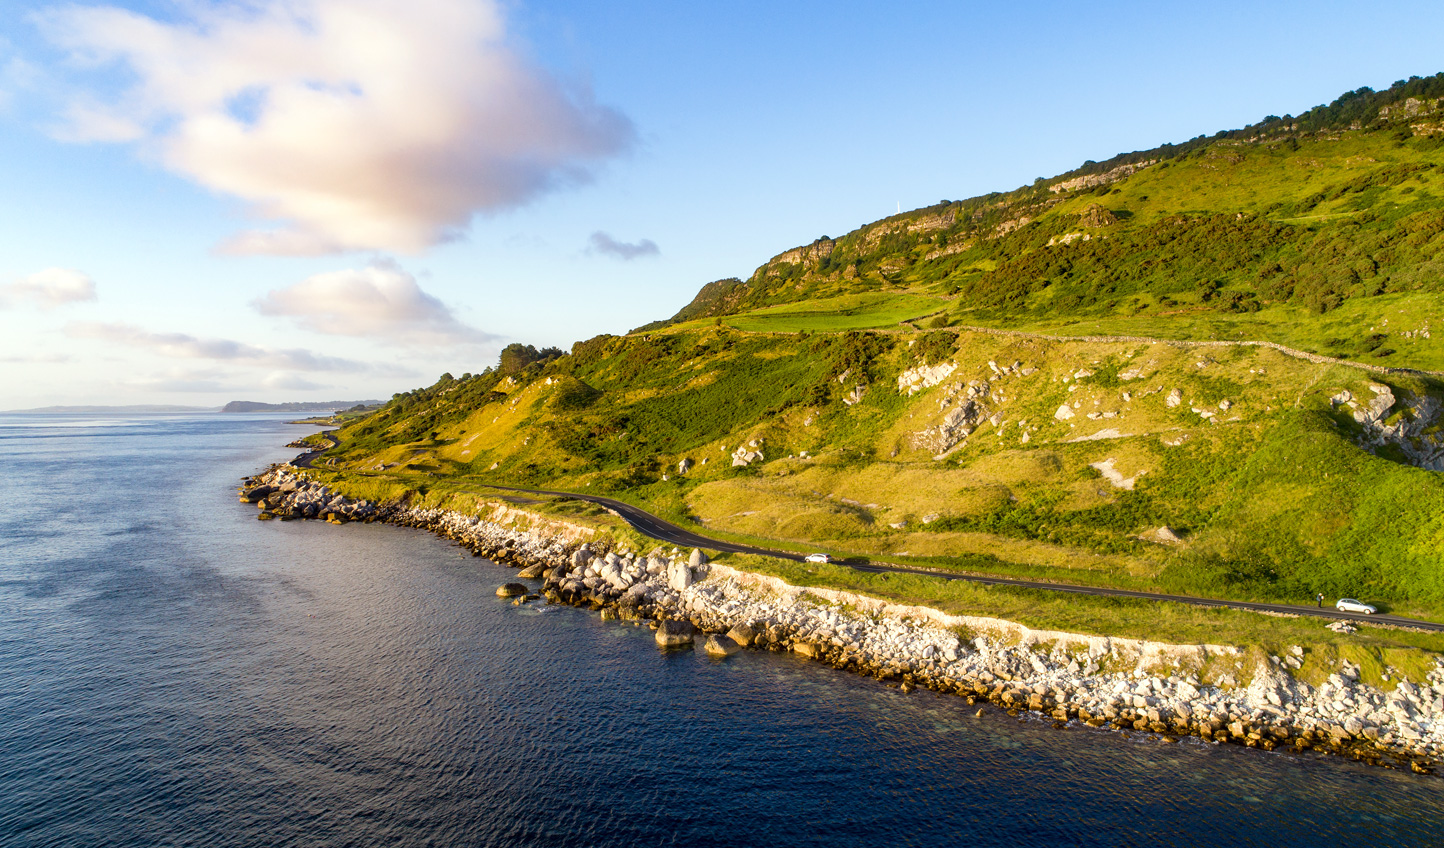 Drive the scenic Causeway Coastal Route